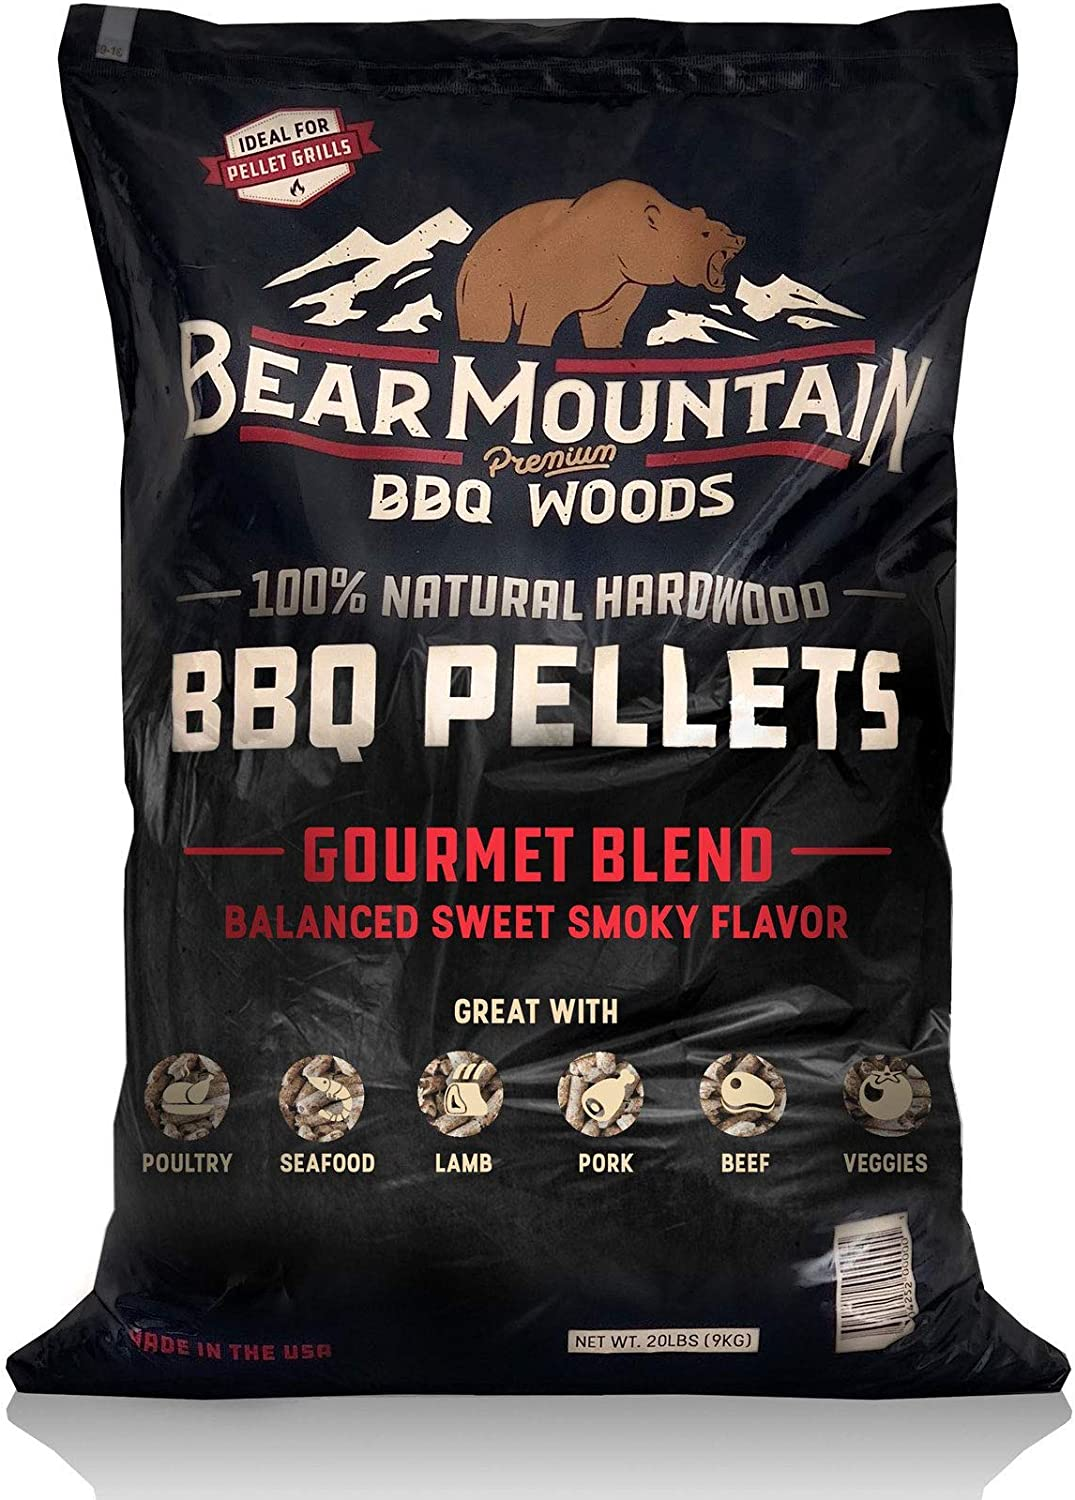 Perfect for Pellet Smokers 20 lb. Bag Apple Wood Mild Sweet Smoky Wood-Fired Flavor or Any Outdoor Grill Bear Mountain BBQ 100/% All-Natural Hardwood Pellets